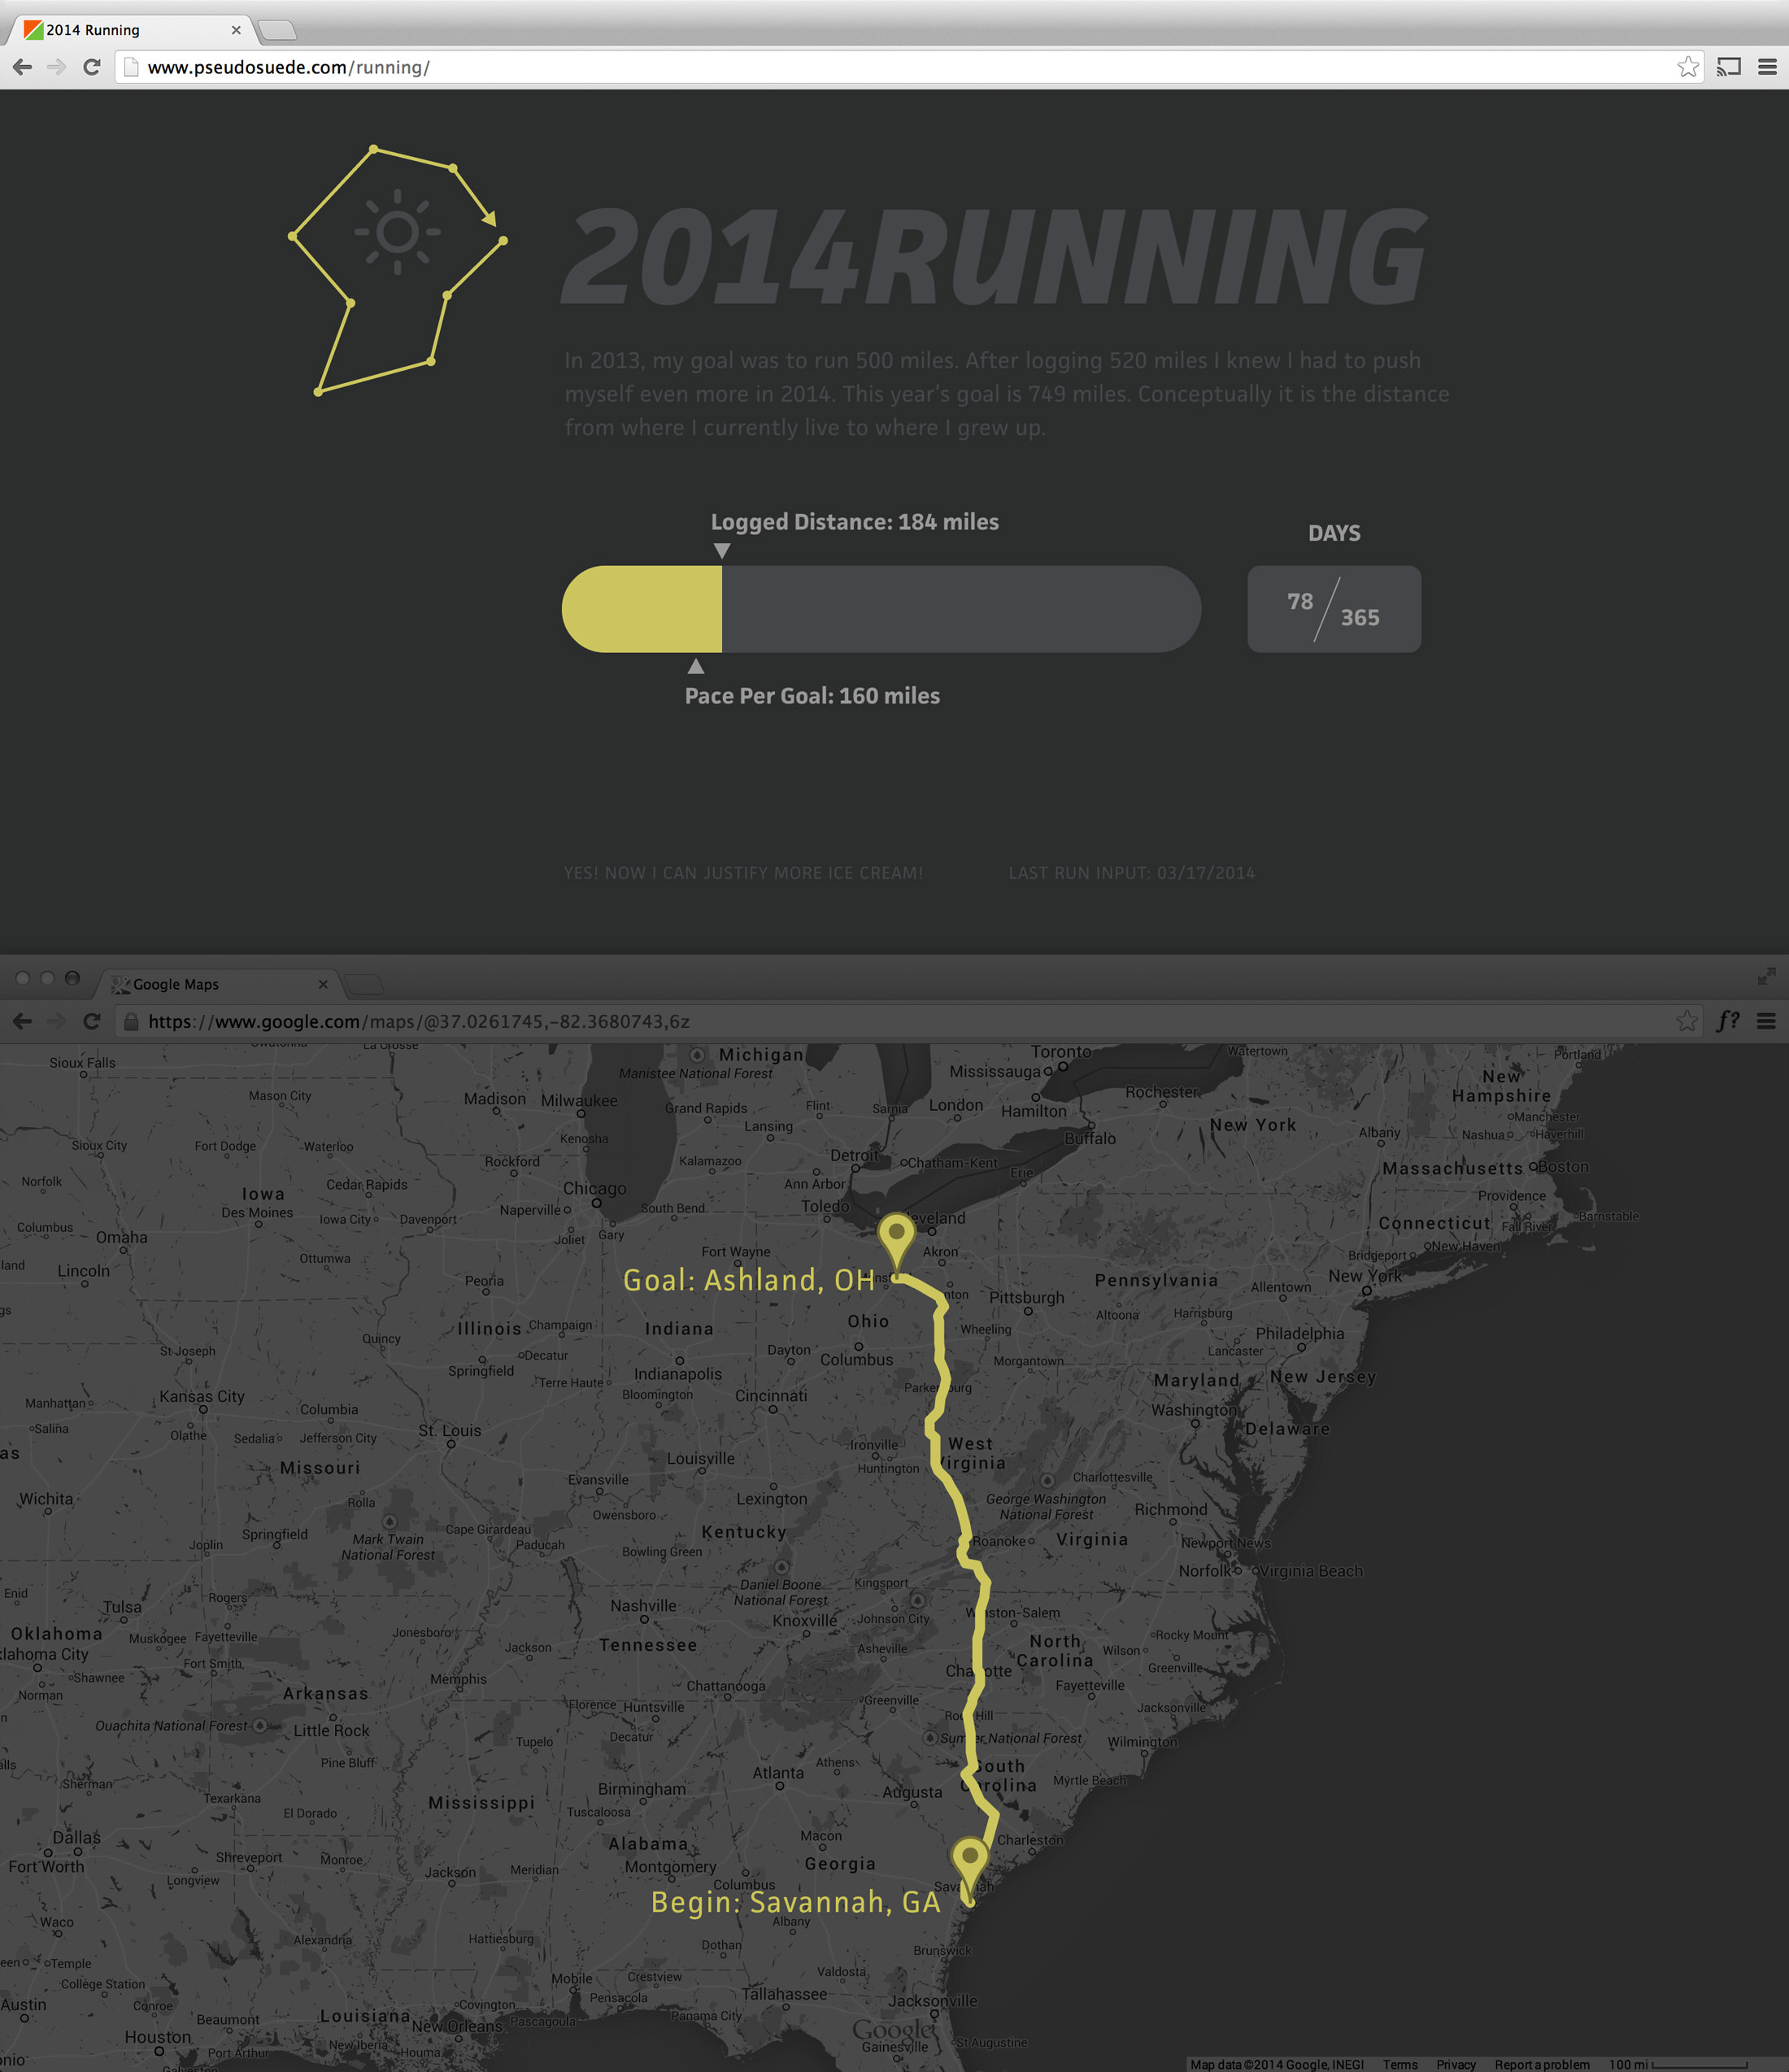 The complete 2014 Running website.